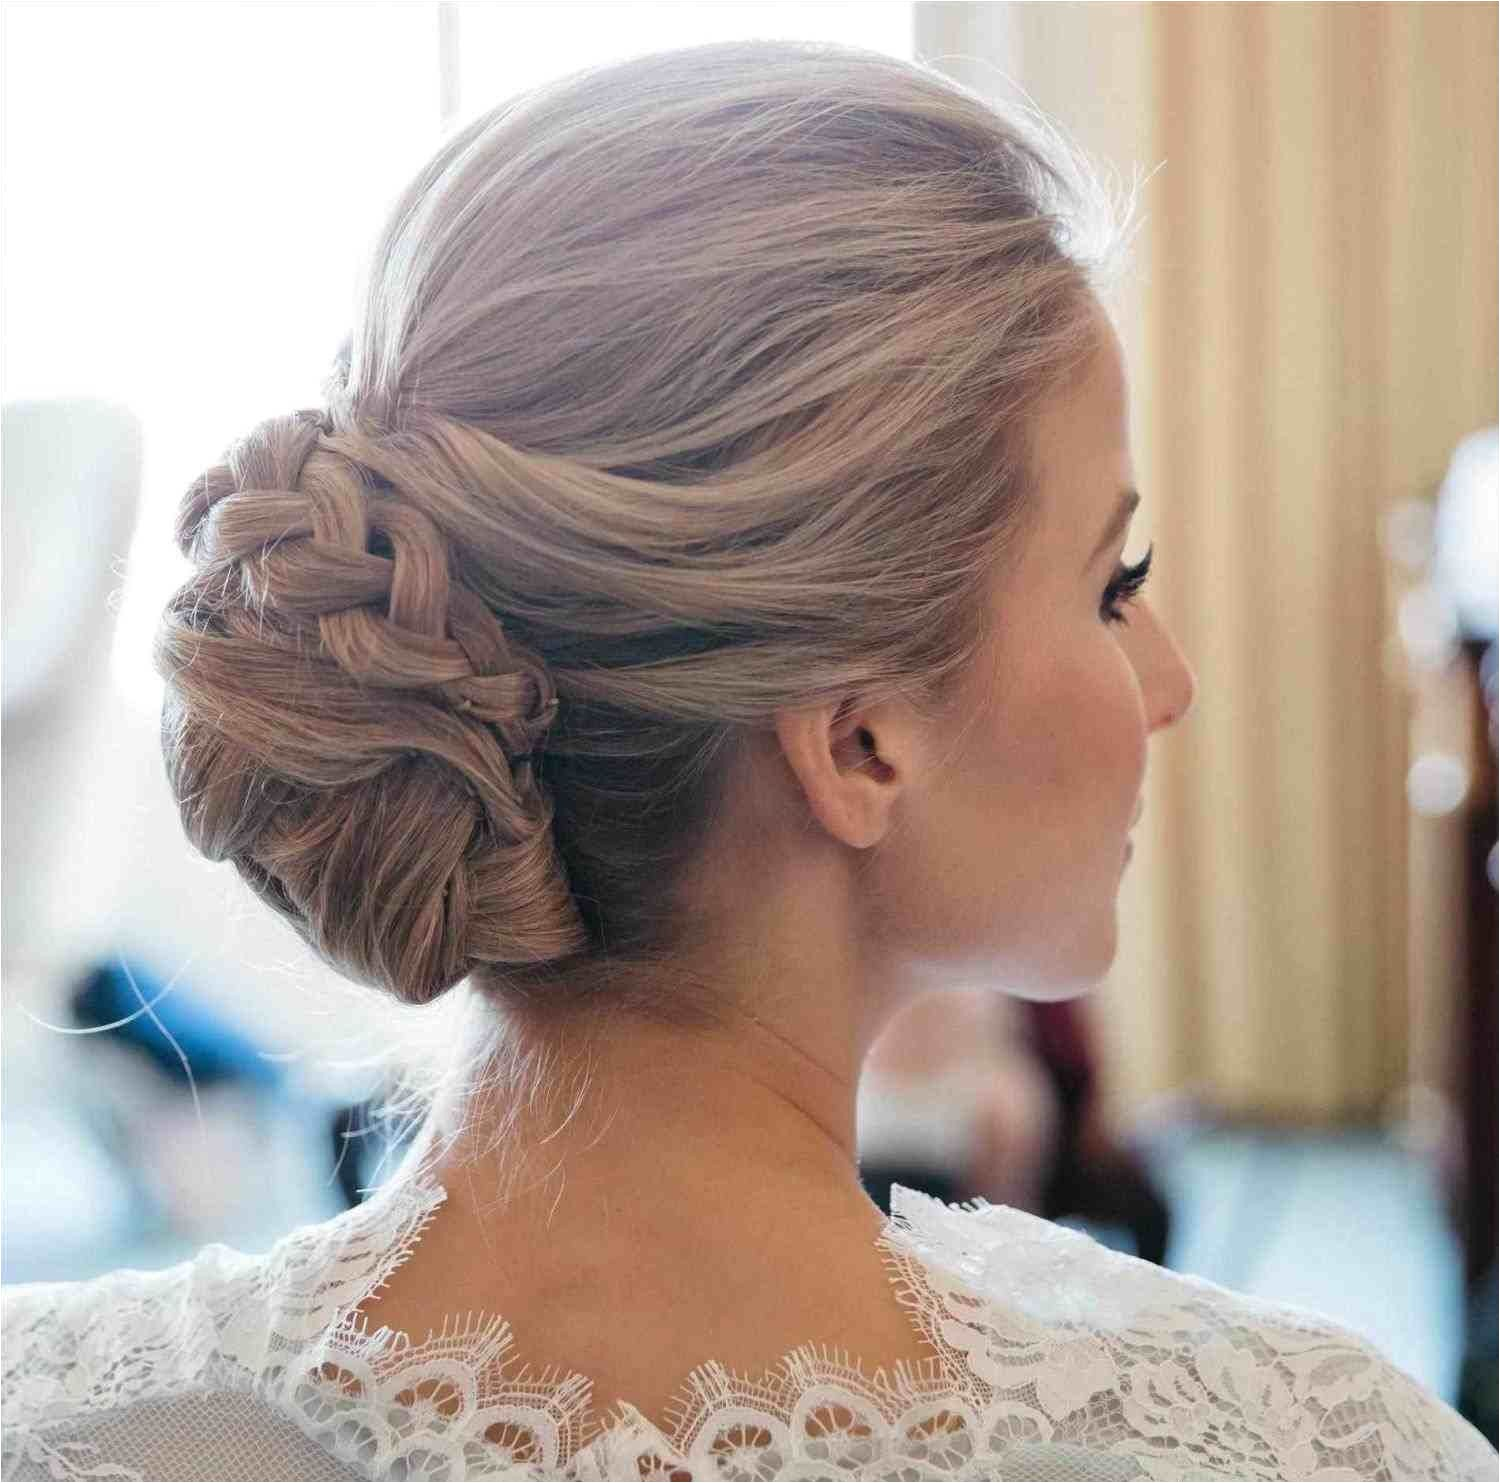 image result for neat and clean updo bridal braid rose and puff updo bun by yasmine alom – pinmyhair messy bun wedding hair how to style a low messy